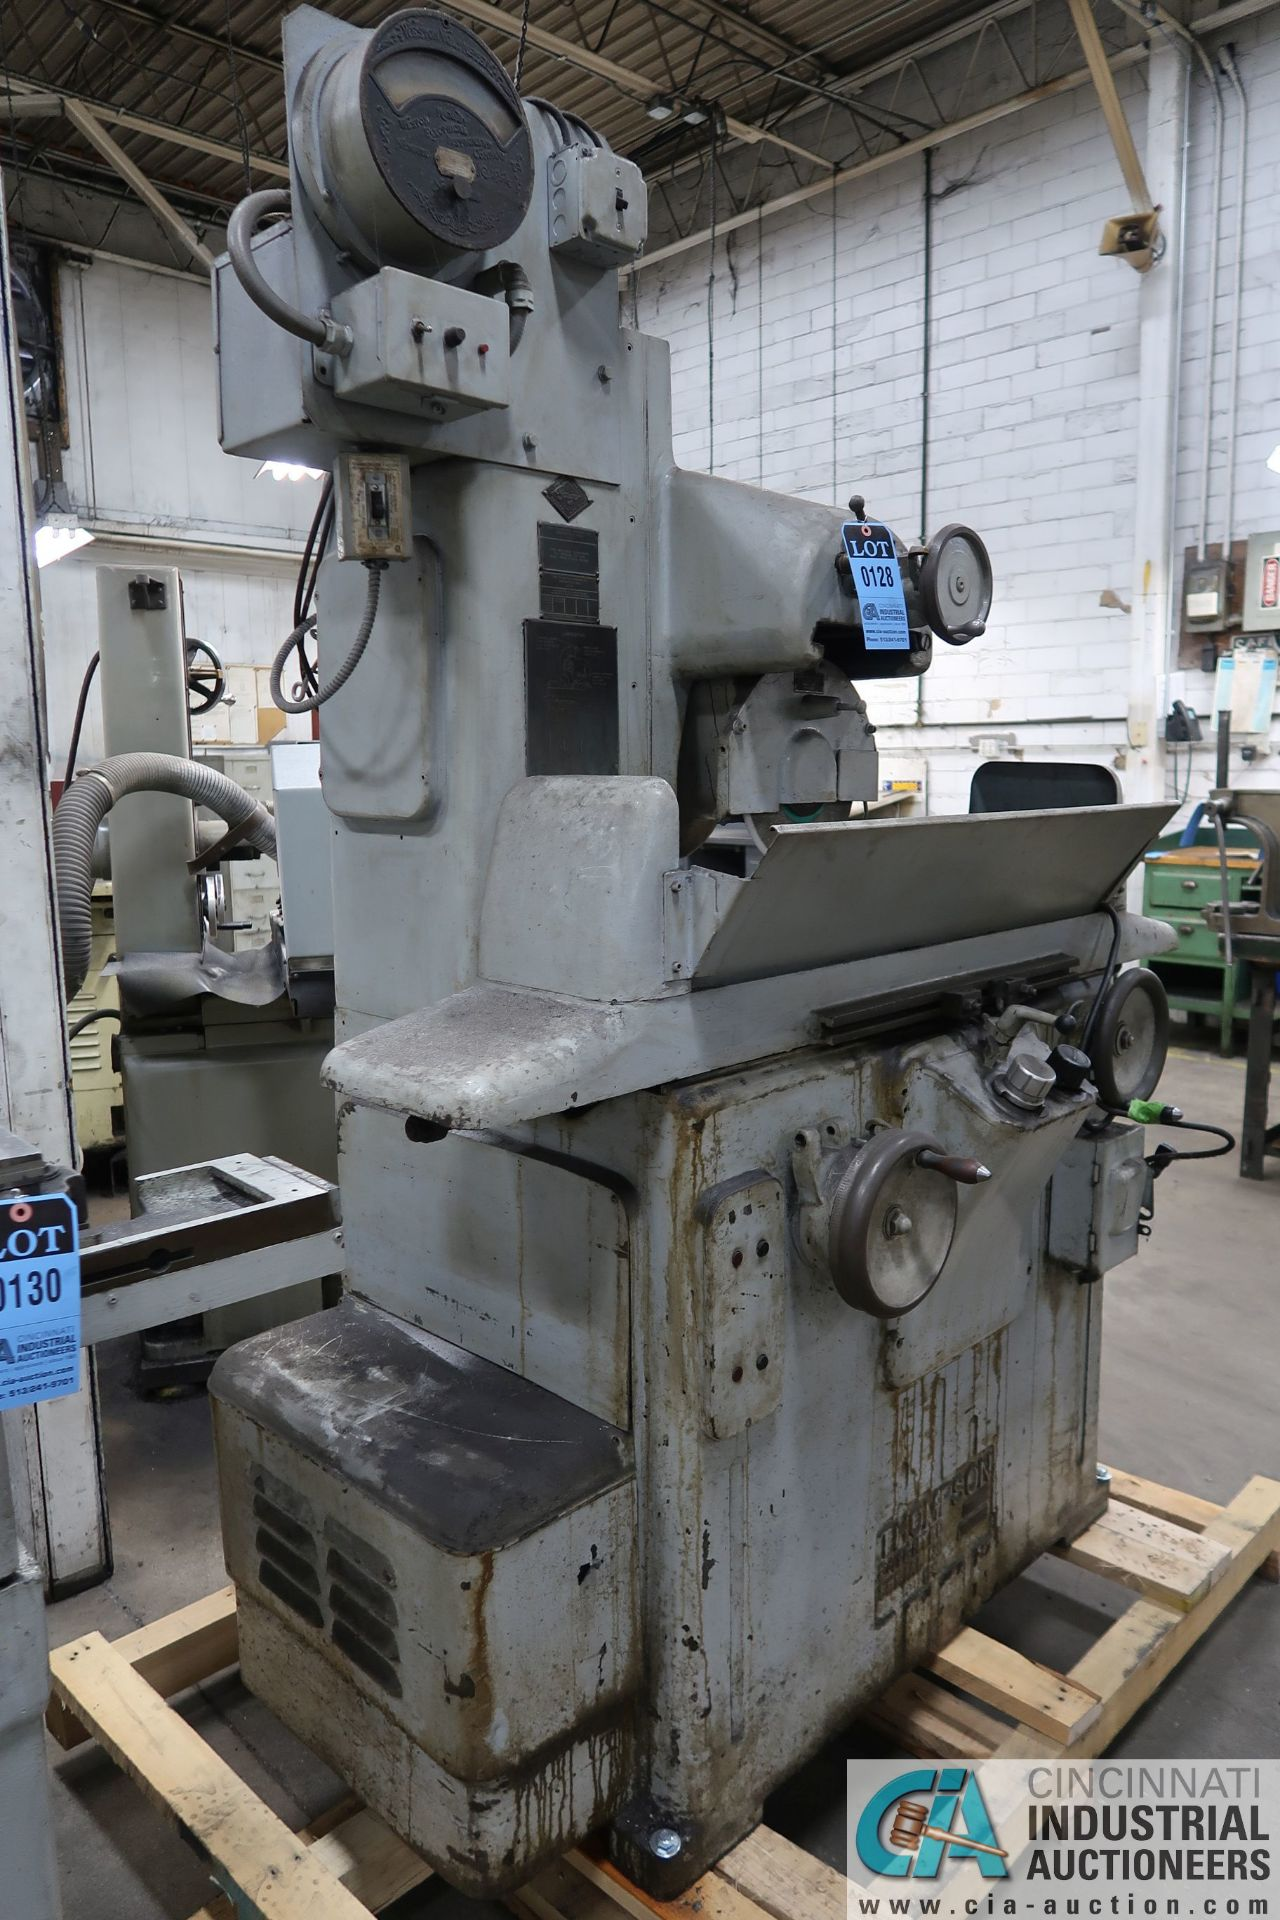 """6"""" X 18"""" THOMPSON HAND FEED SURFACE GRINDER; S/N F46258, 220 VOLTS, 3-PHASE, 1-1/2 HP MOTOR - Image 7 of 10"""